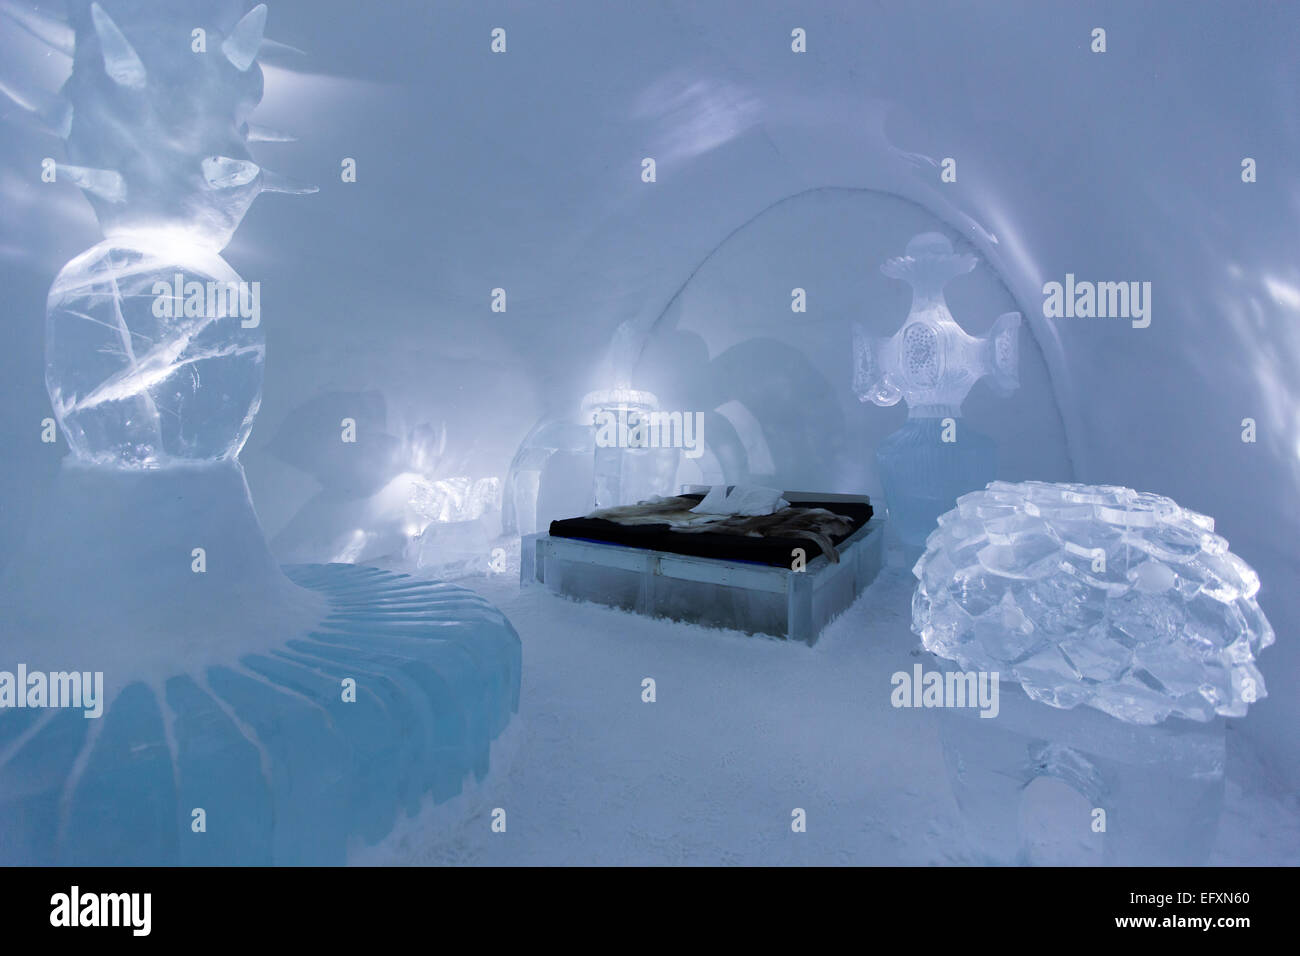 Ice Hotel in Northern Sweden - Stock Image